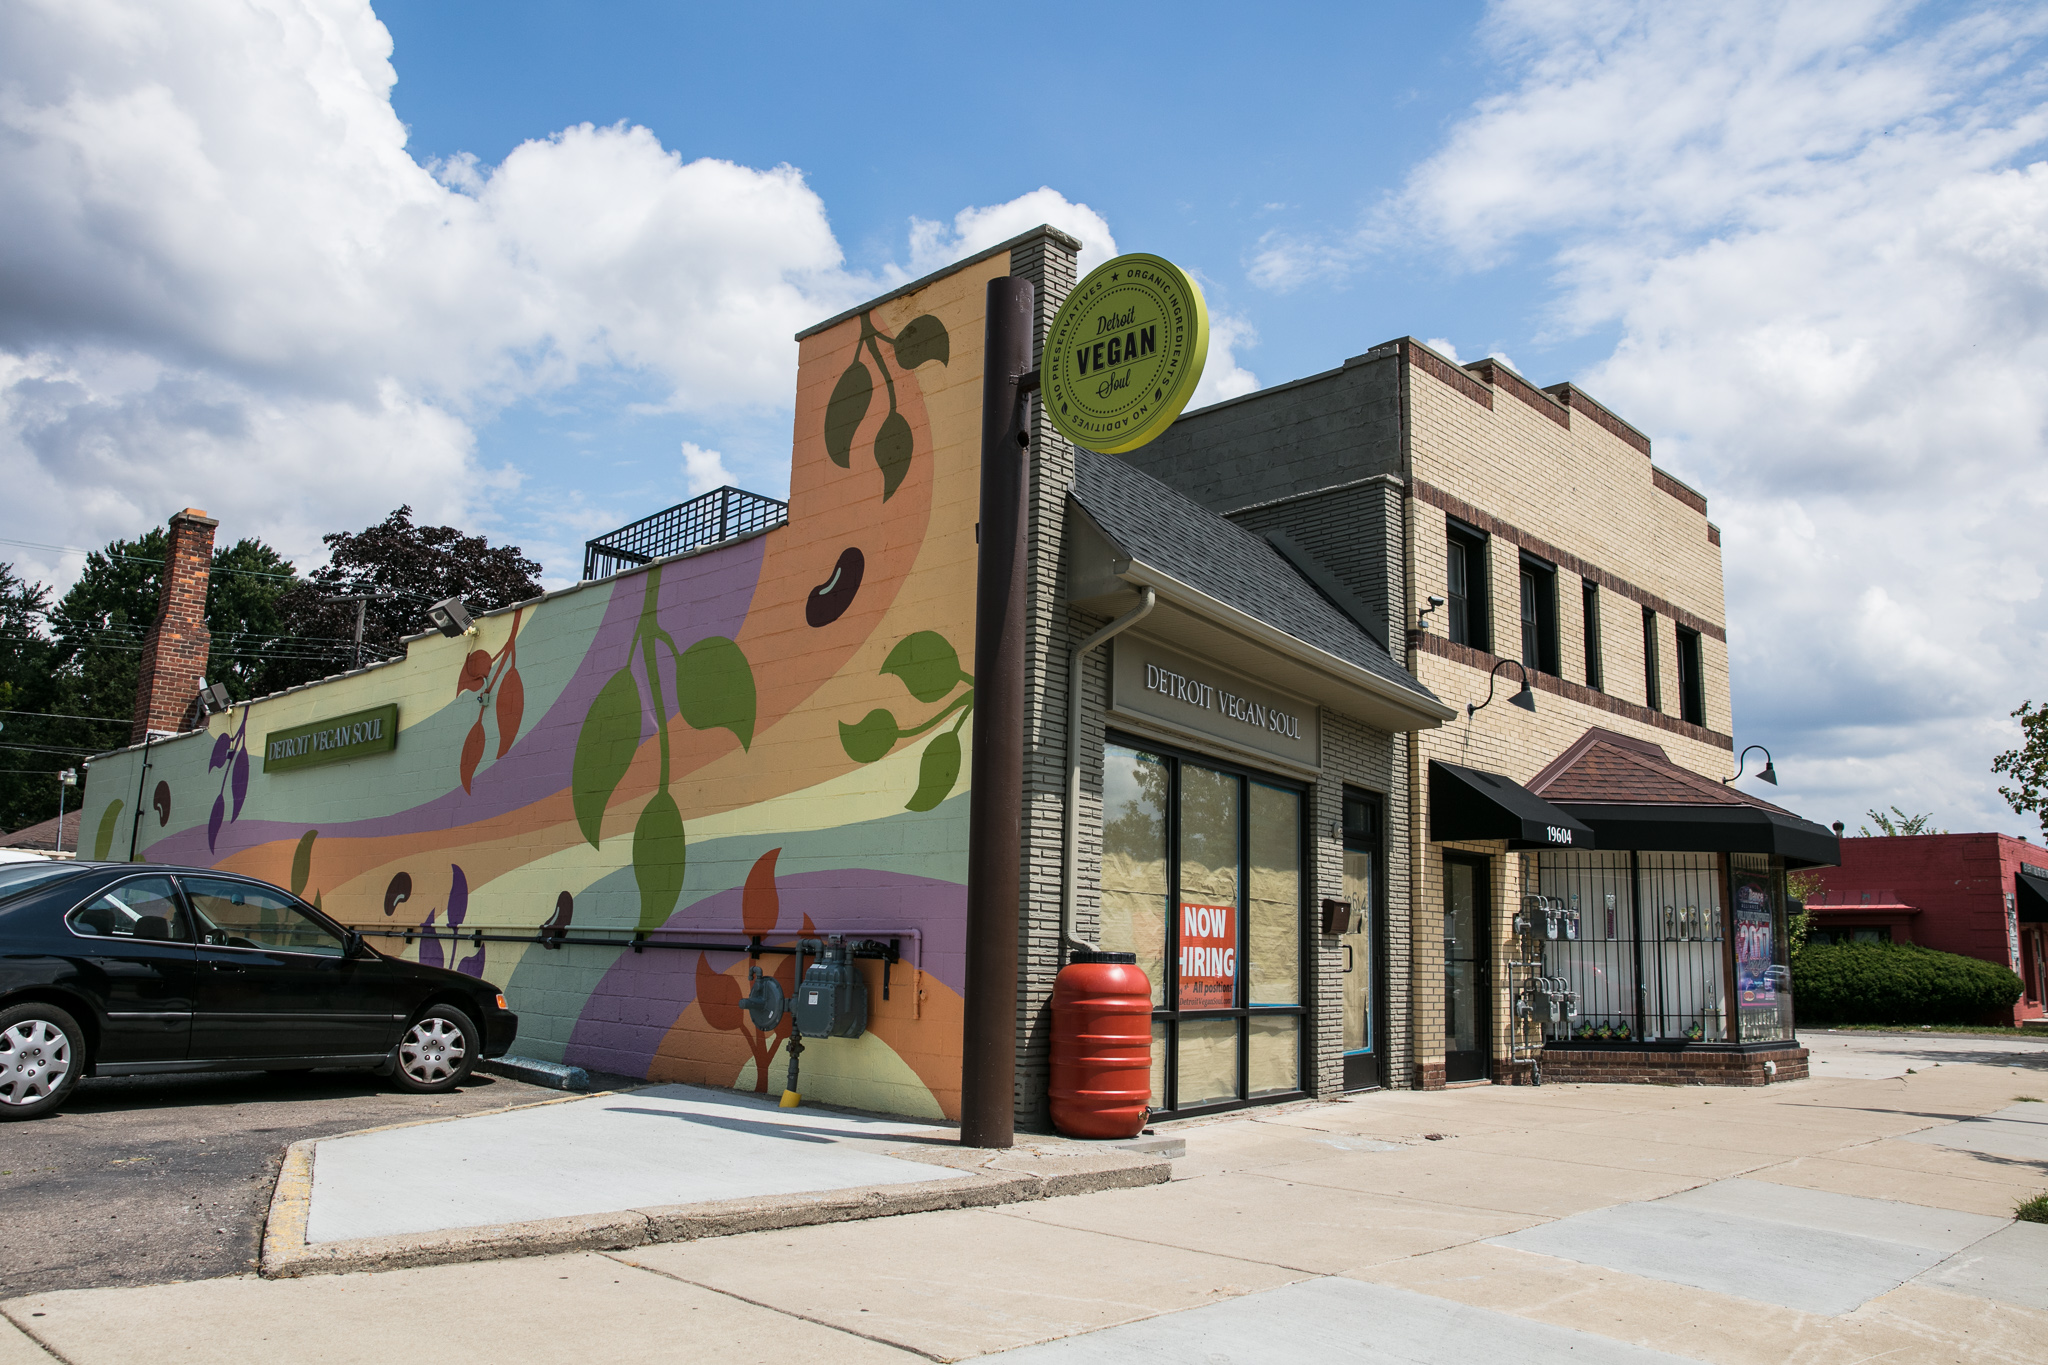 The mural at Detroit Vegan Soul incorporates earth tones and natural motifs to reflect the values of the business.